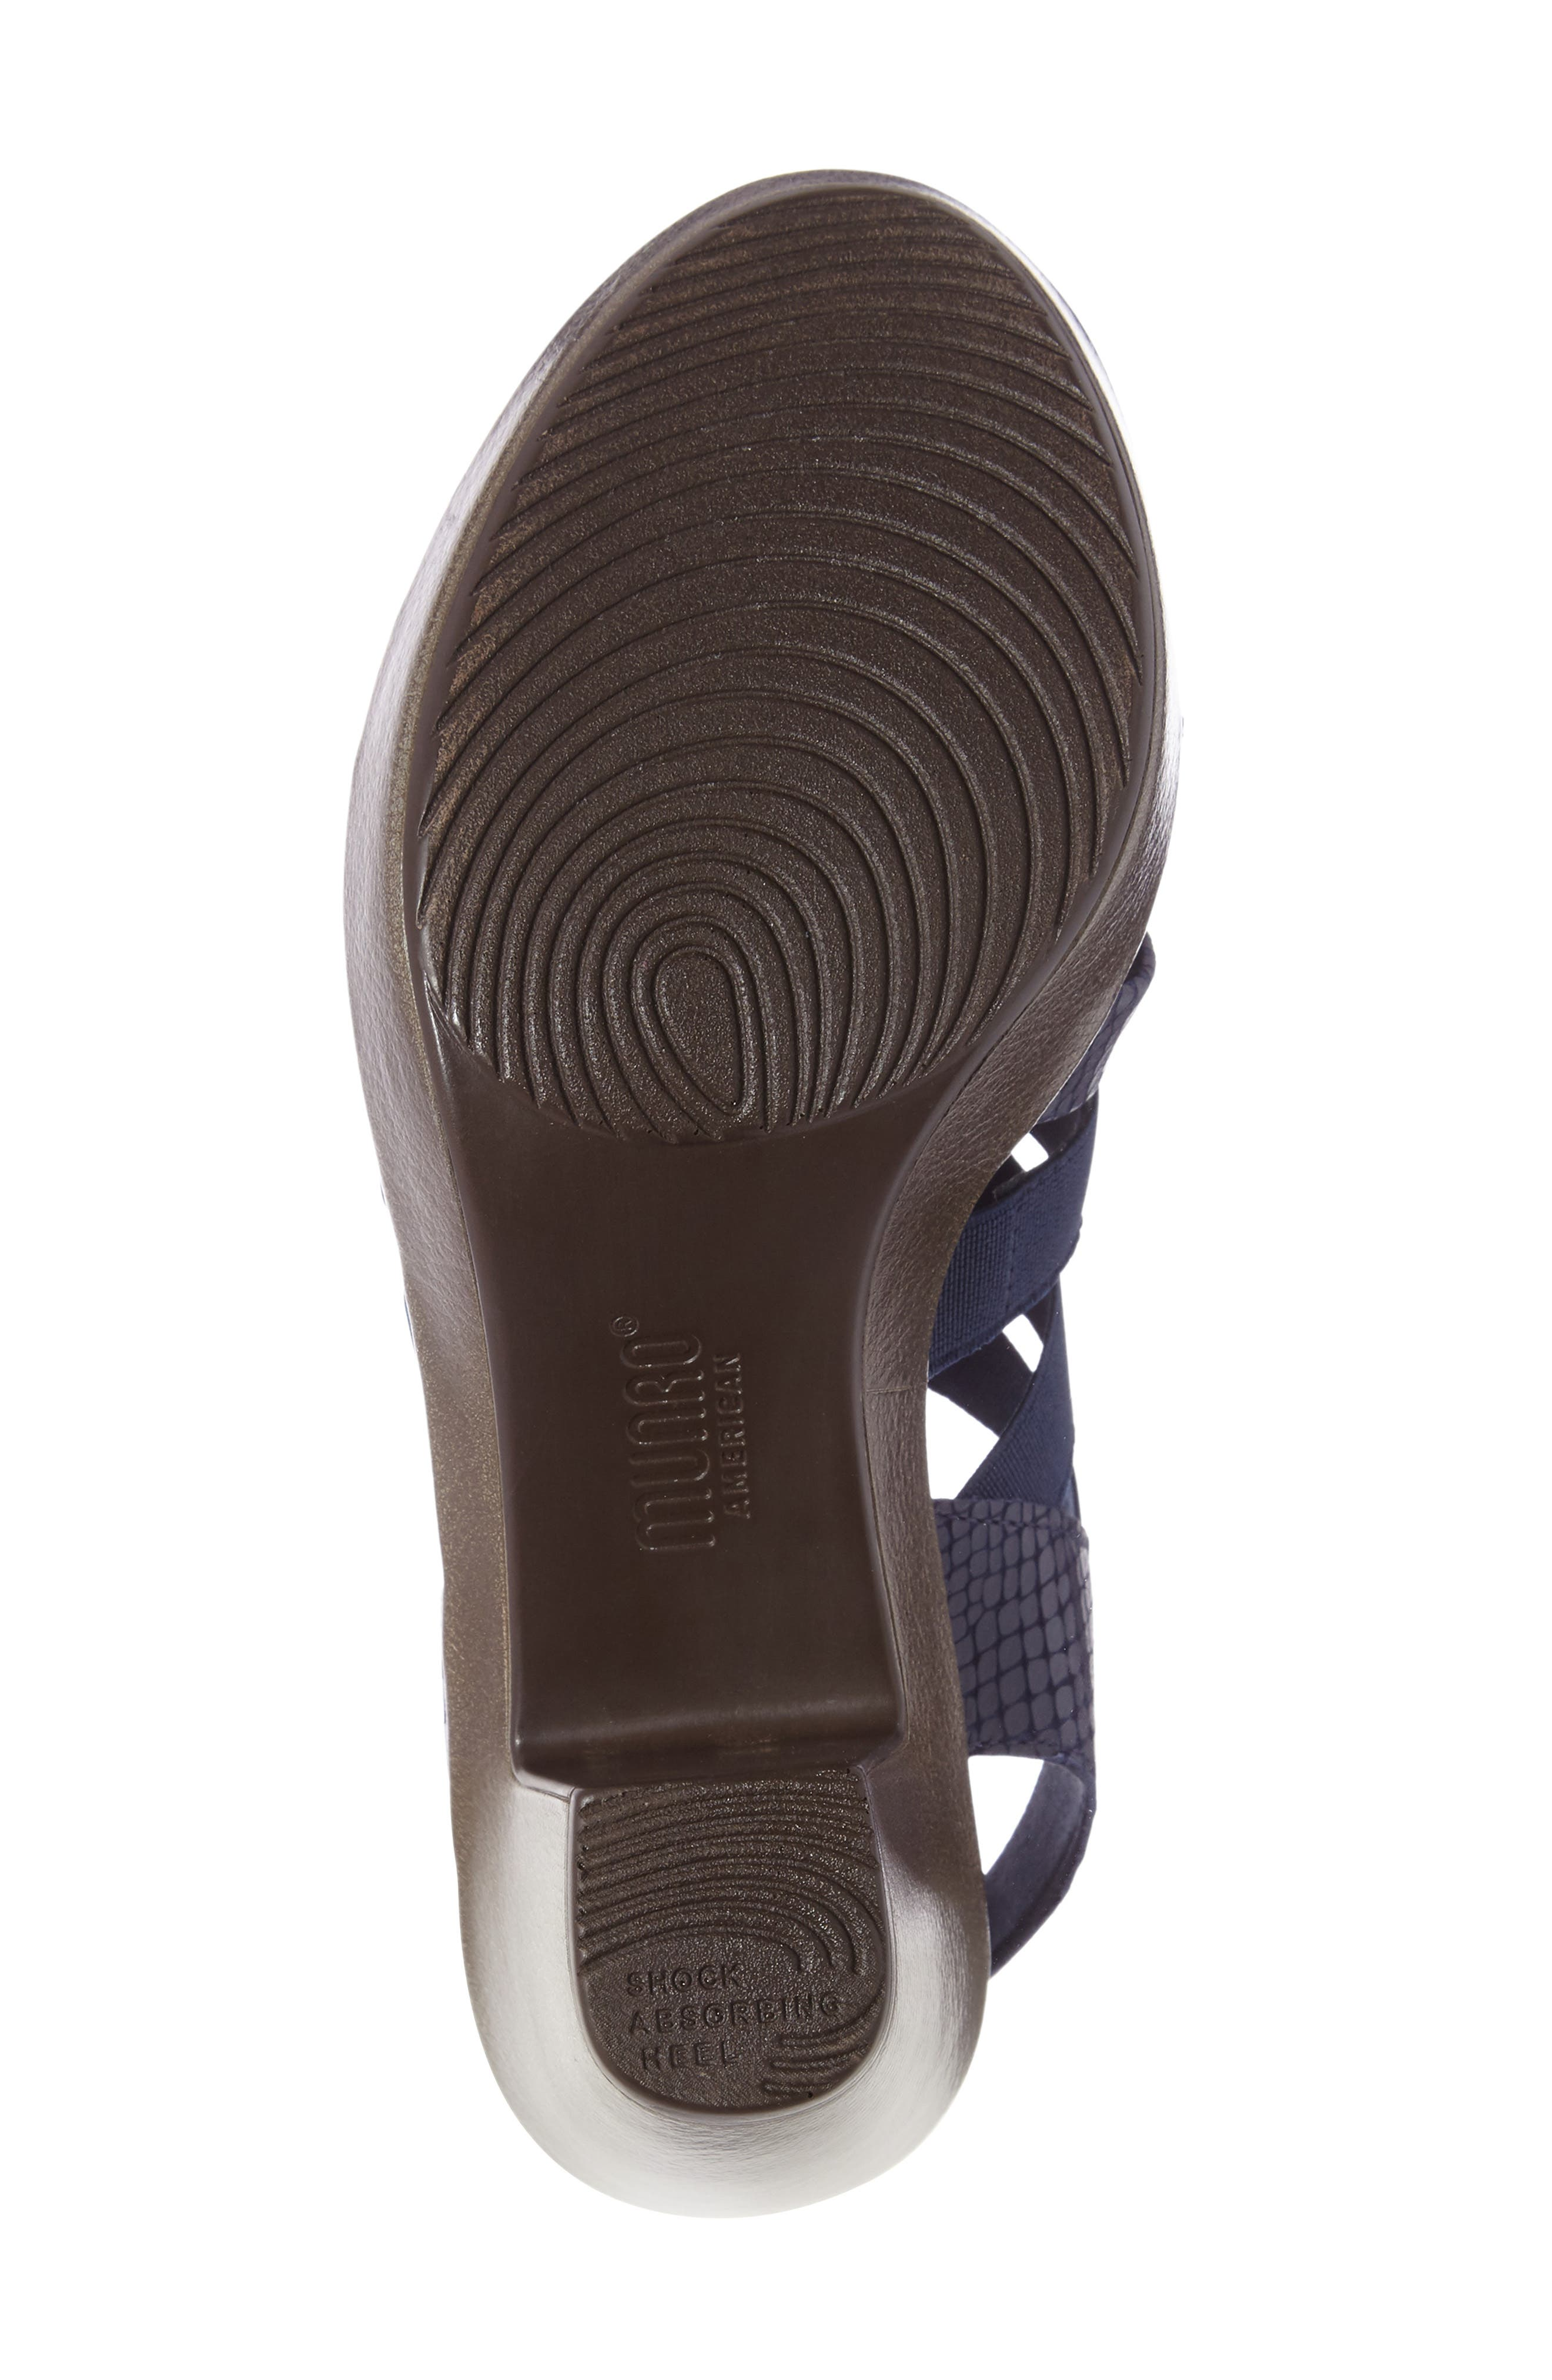 'Cookie' Slingback Sandal,                             Alternate thumbnail 4, color,                             Blue Leather